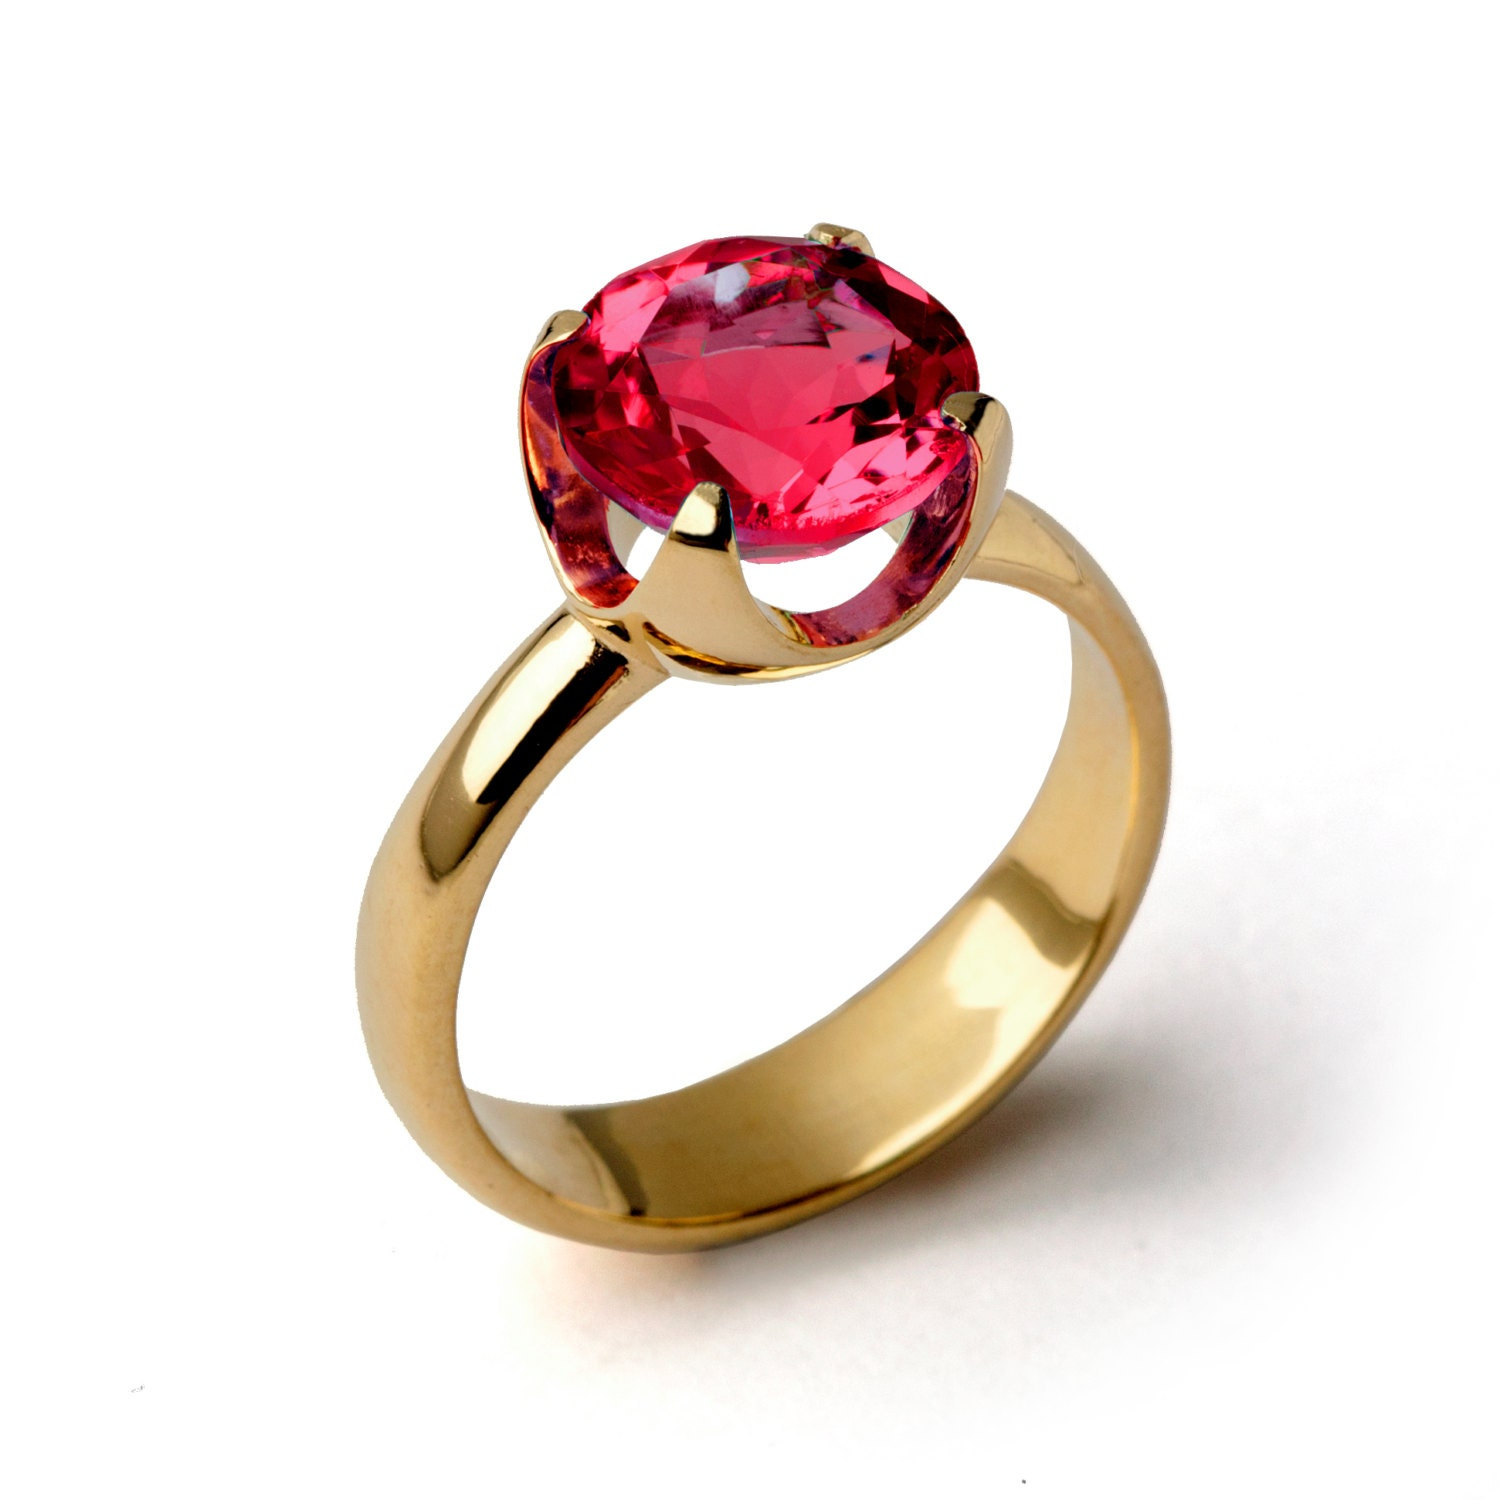 cup ruby engagement ring gold ruby ring ruby by aroshataglia. Black Bedroom Furniture Sets. Home Design Ideas